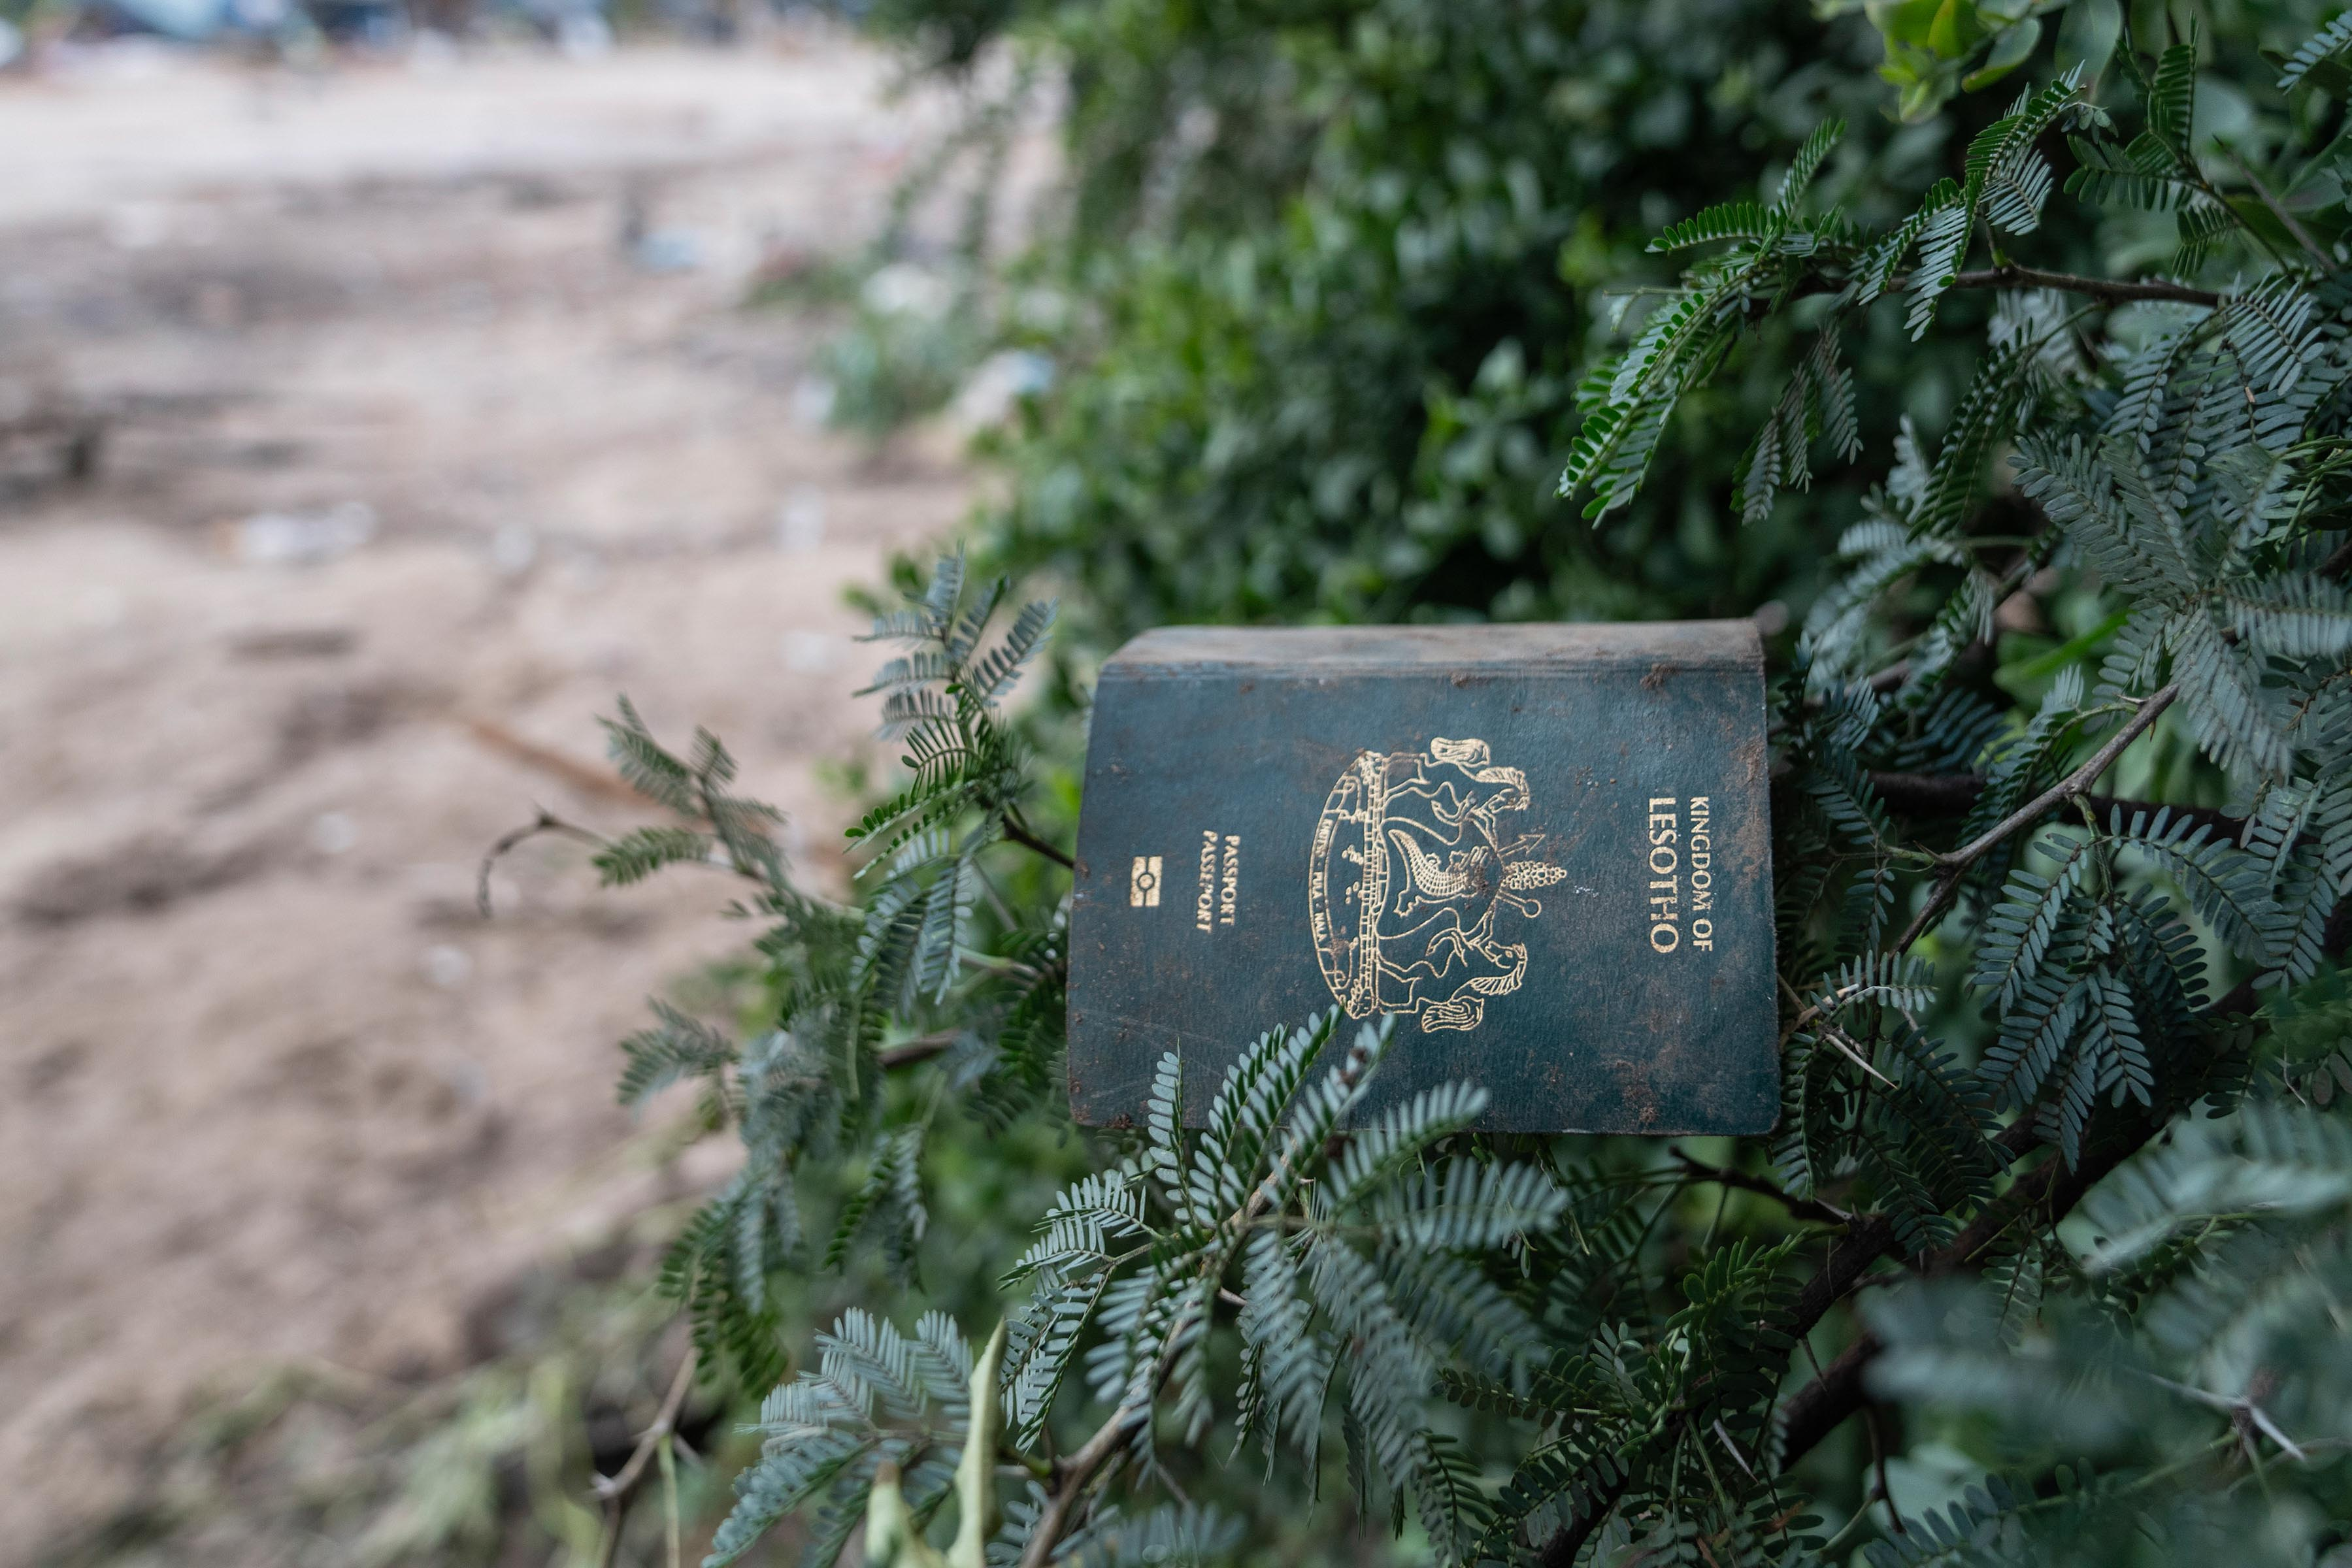 12 December 2019: A Lesotho passport belonging to a Mushroomville resident, salvaged and left to dry on a tree.